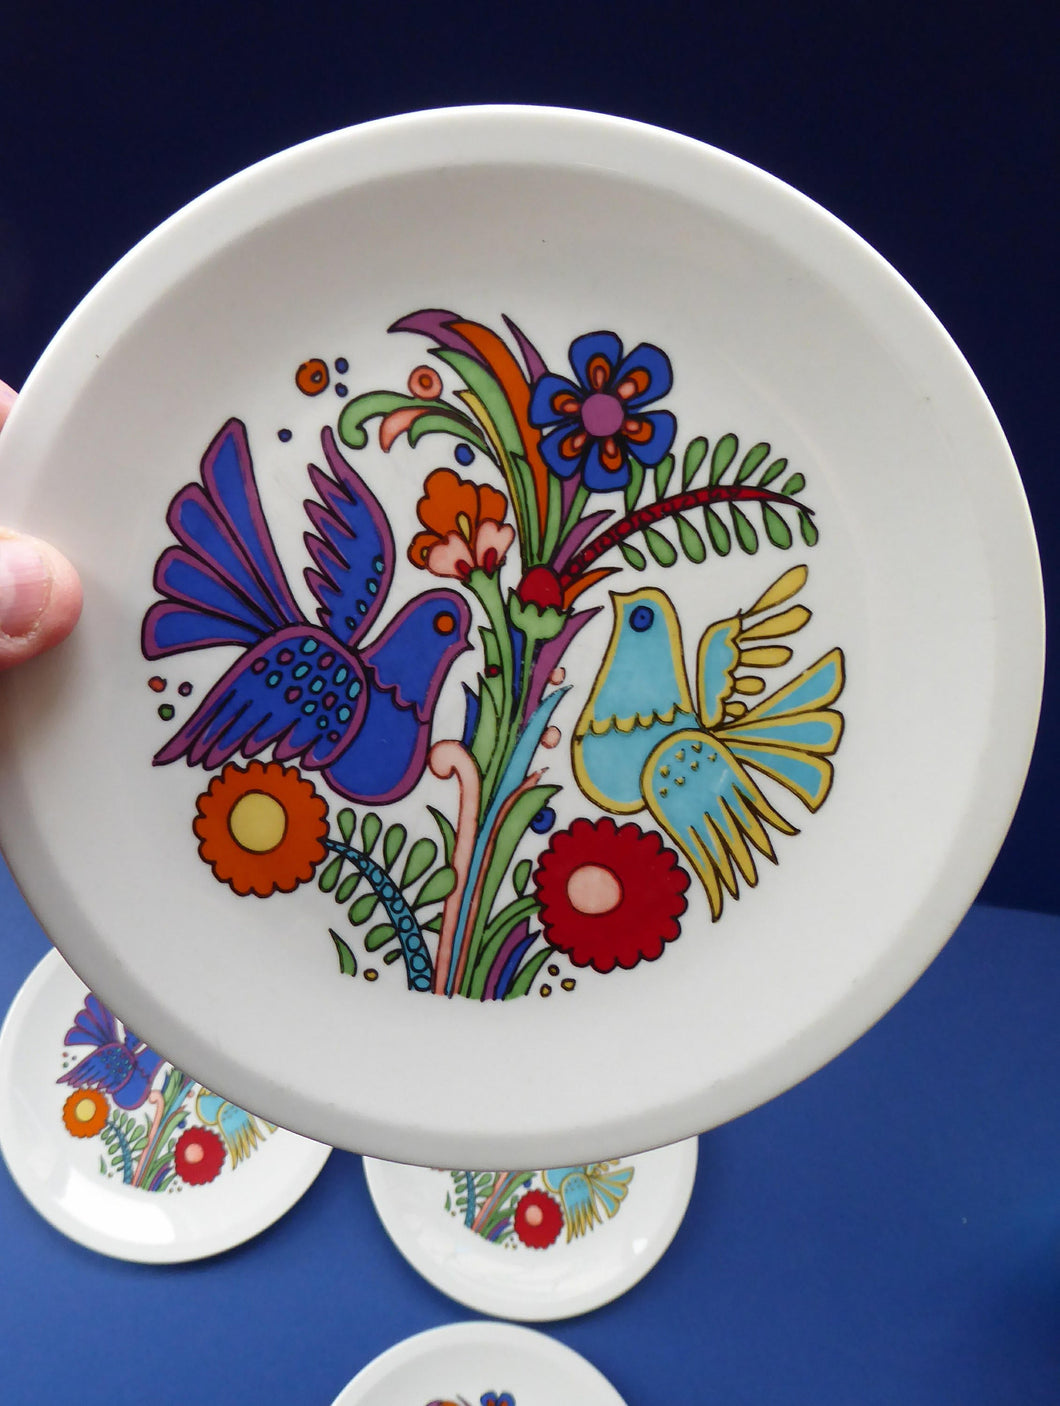 Vintage Acapulco VILLEROY & BOCH Rarer Side Plate with Full Image as Decoration: 6 1/4 inches diameter